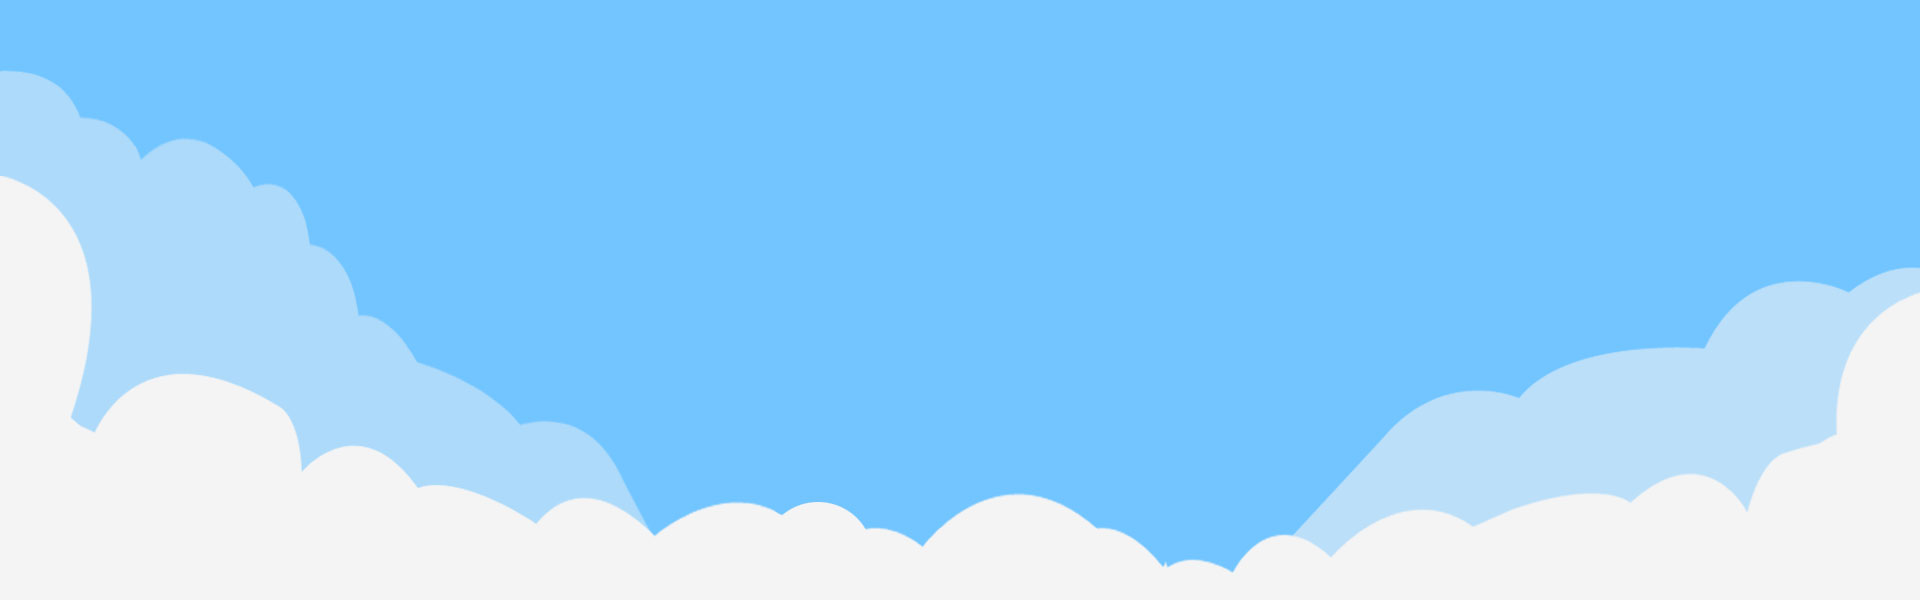 Clouds clipart banner. Clear blue sky white